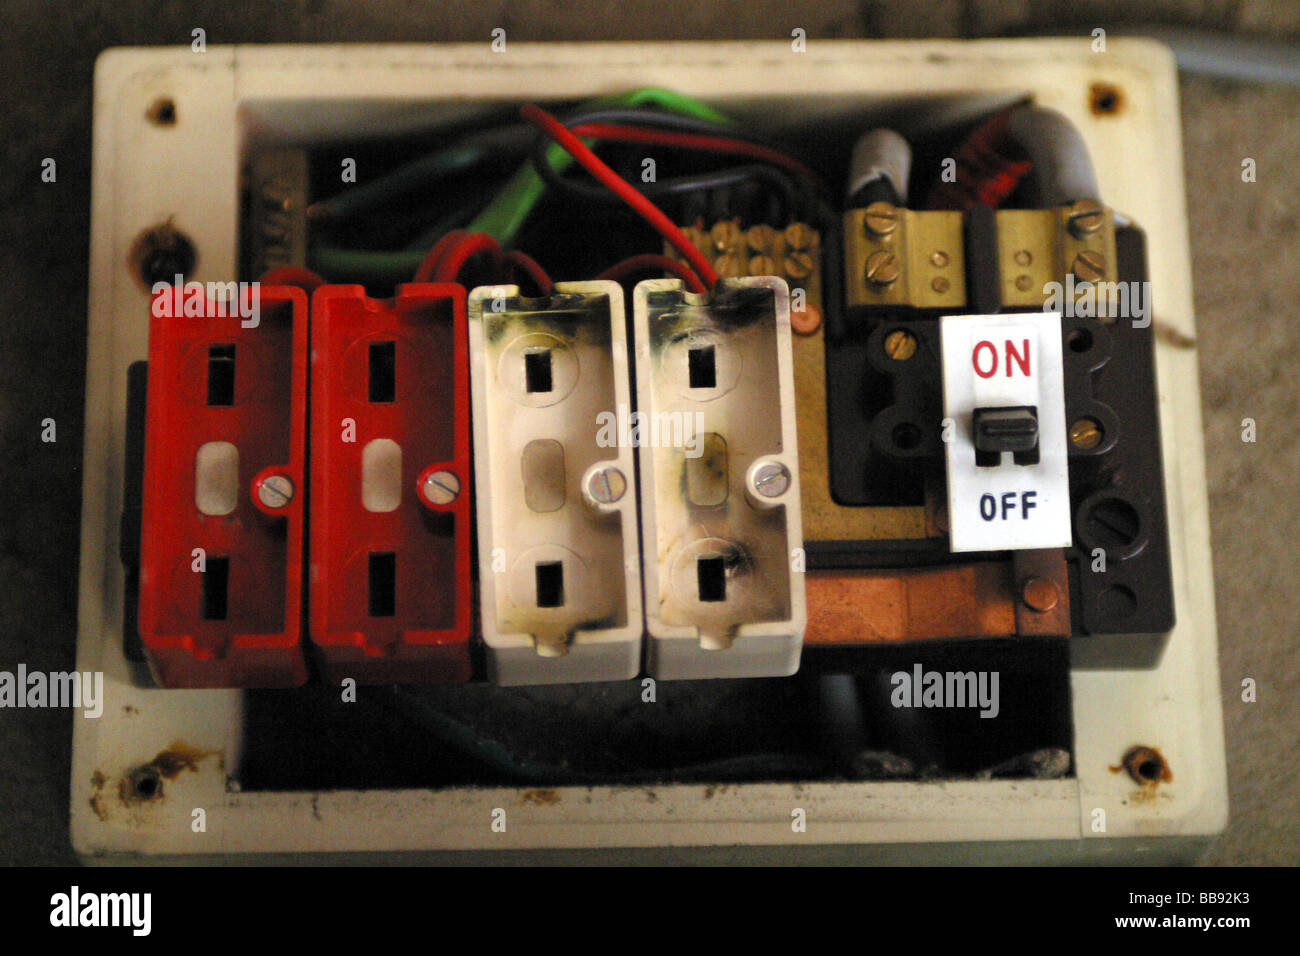 old style wire fuse box with no fuses installed stock photo rh alamy com wiring fuse box car wiring fuse box with breaker